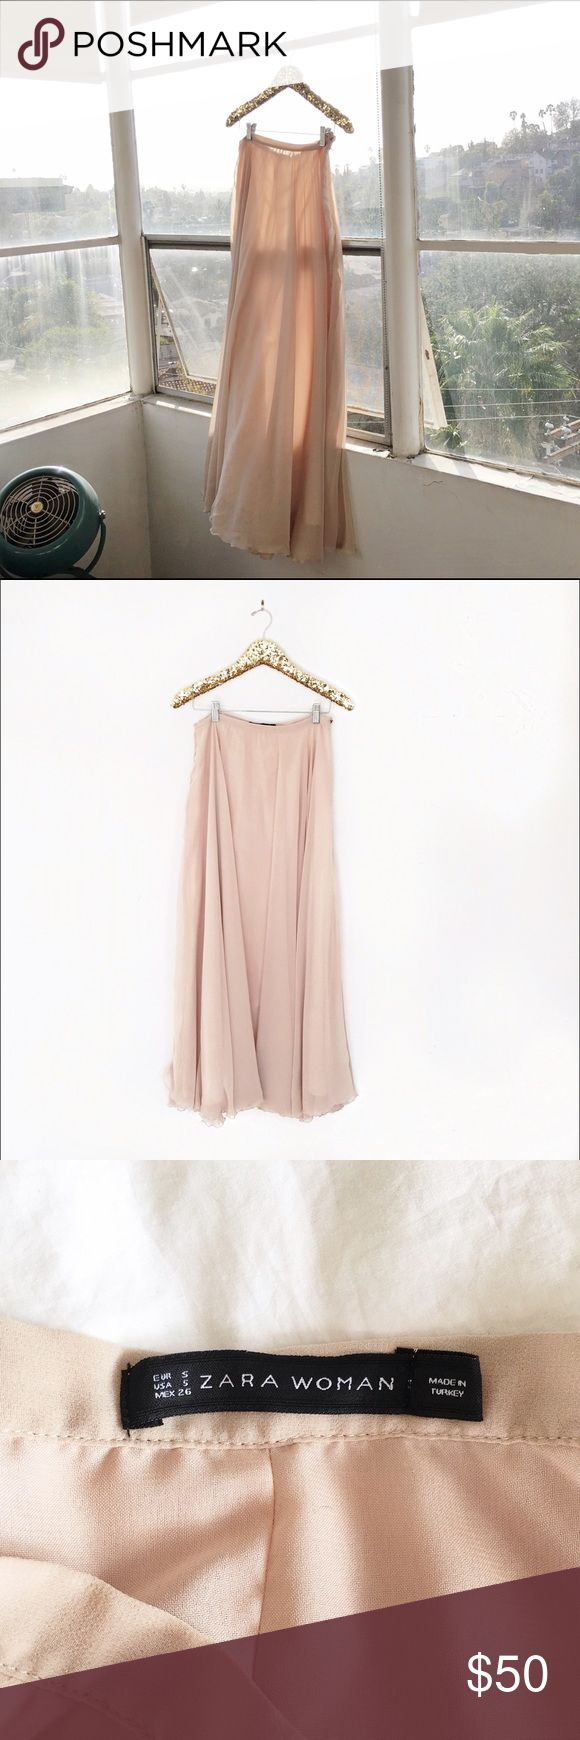 Beautiful Blush Zara Maxi Skirt Blush Zara skirt. Only worn a couple of times.  So beautiful worn with a shirt tucked in or more casual with a denim top. Can really dress up or dress down. Button is a little lose, may need to be reinforced, but other than that, good condition! Zara Skirts Maxi